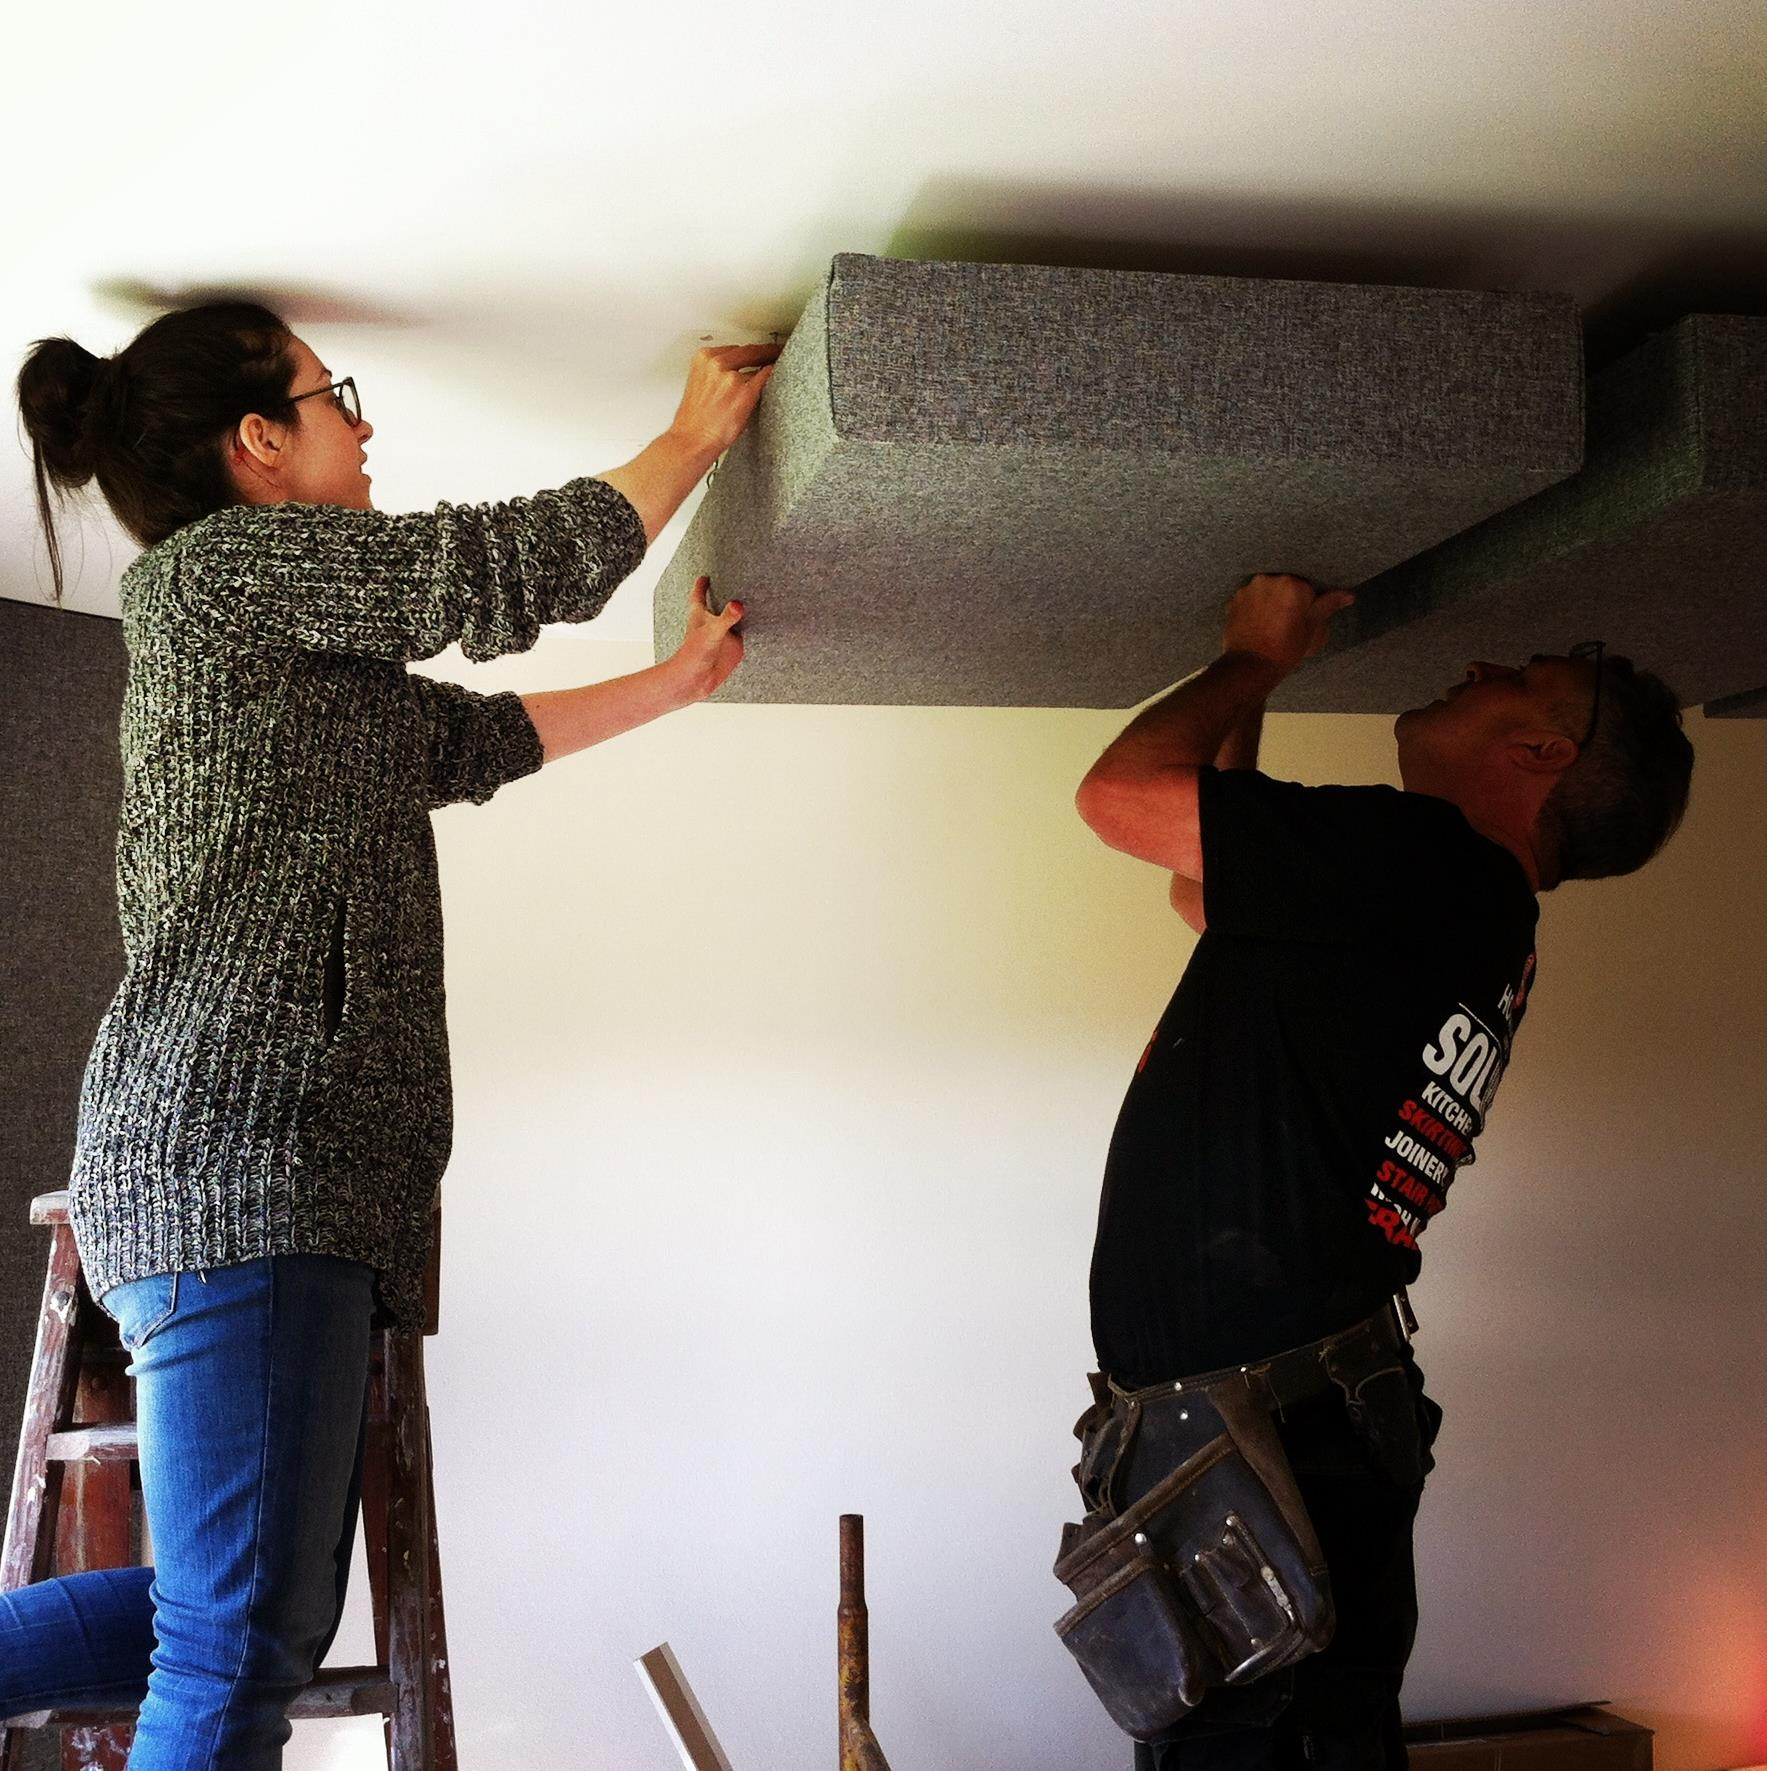 The better half, and Handydad